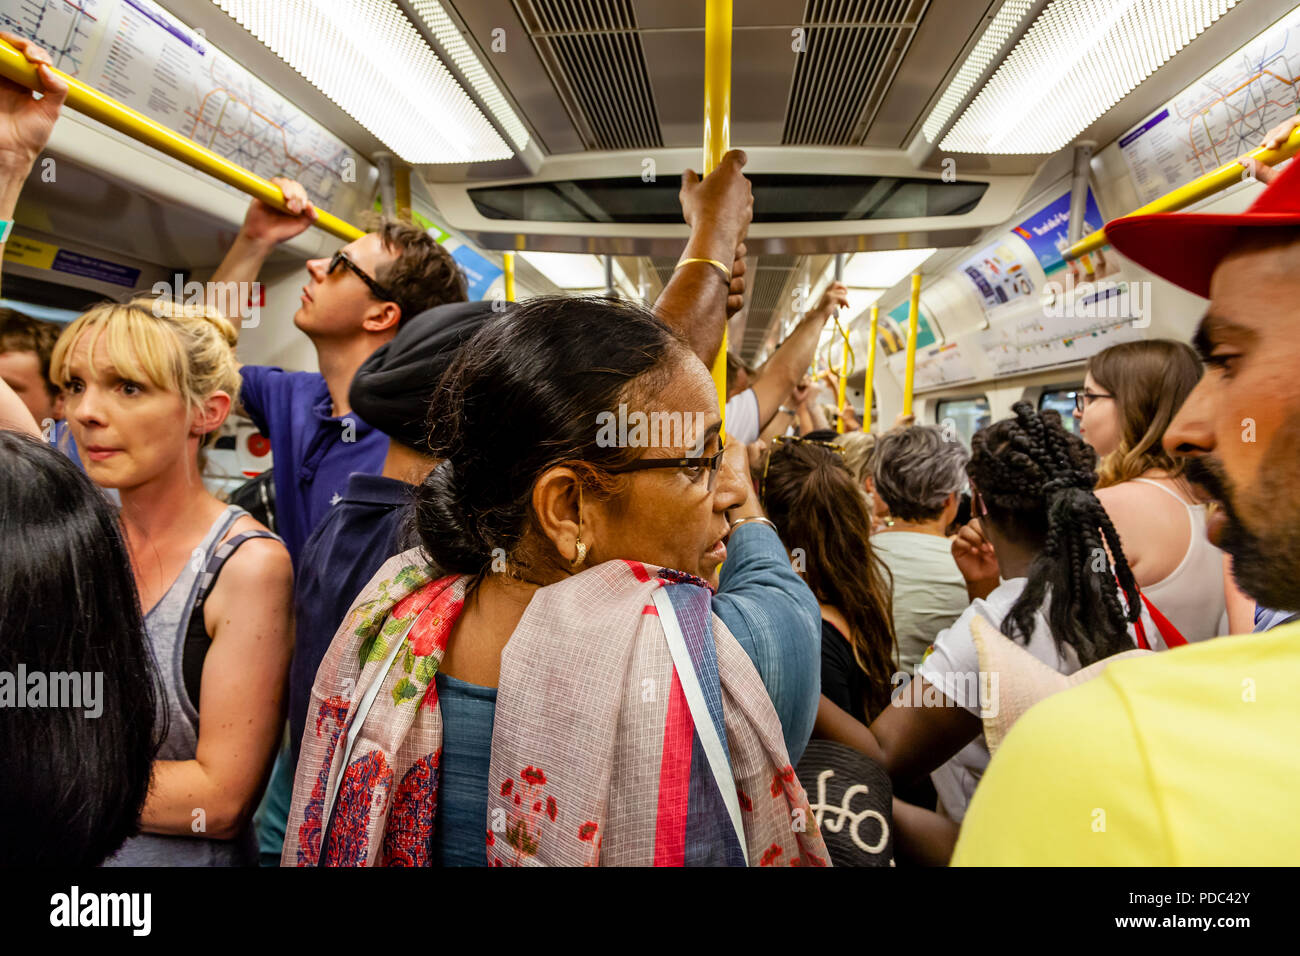 A Busy London Underground Train, London, England - Stock Image